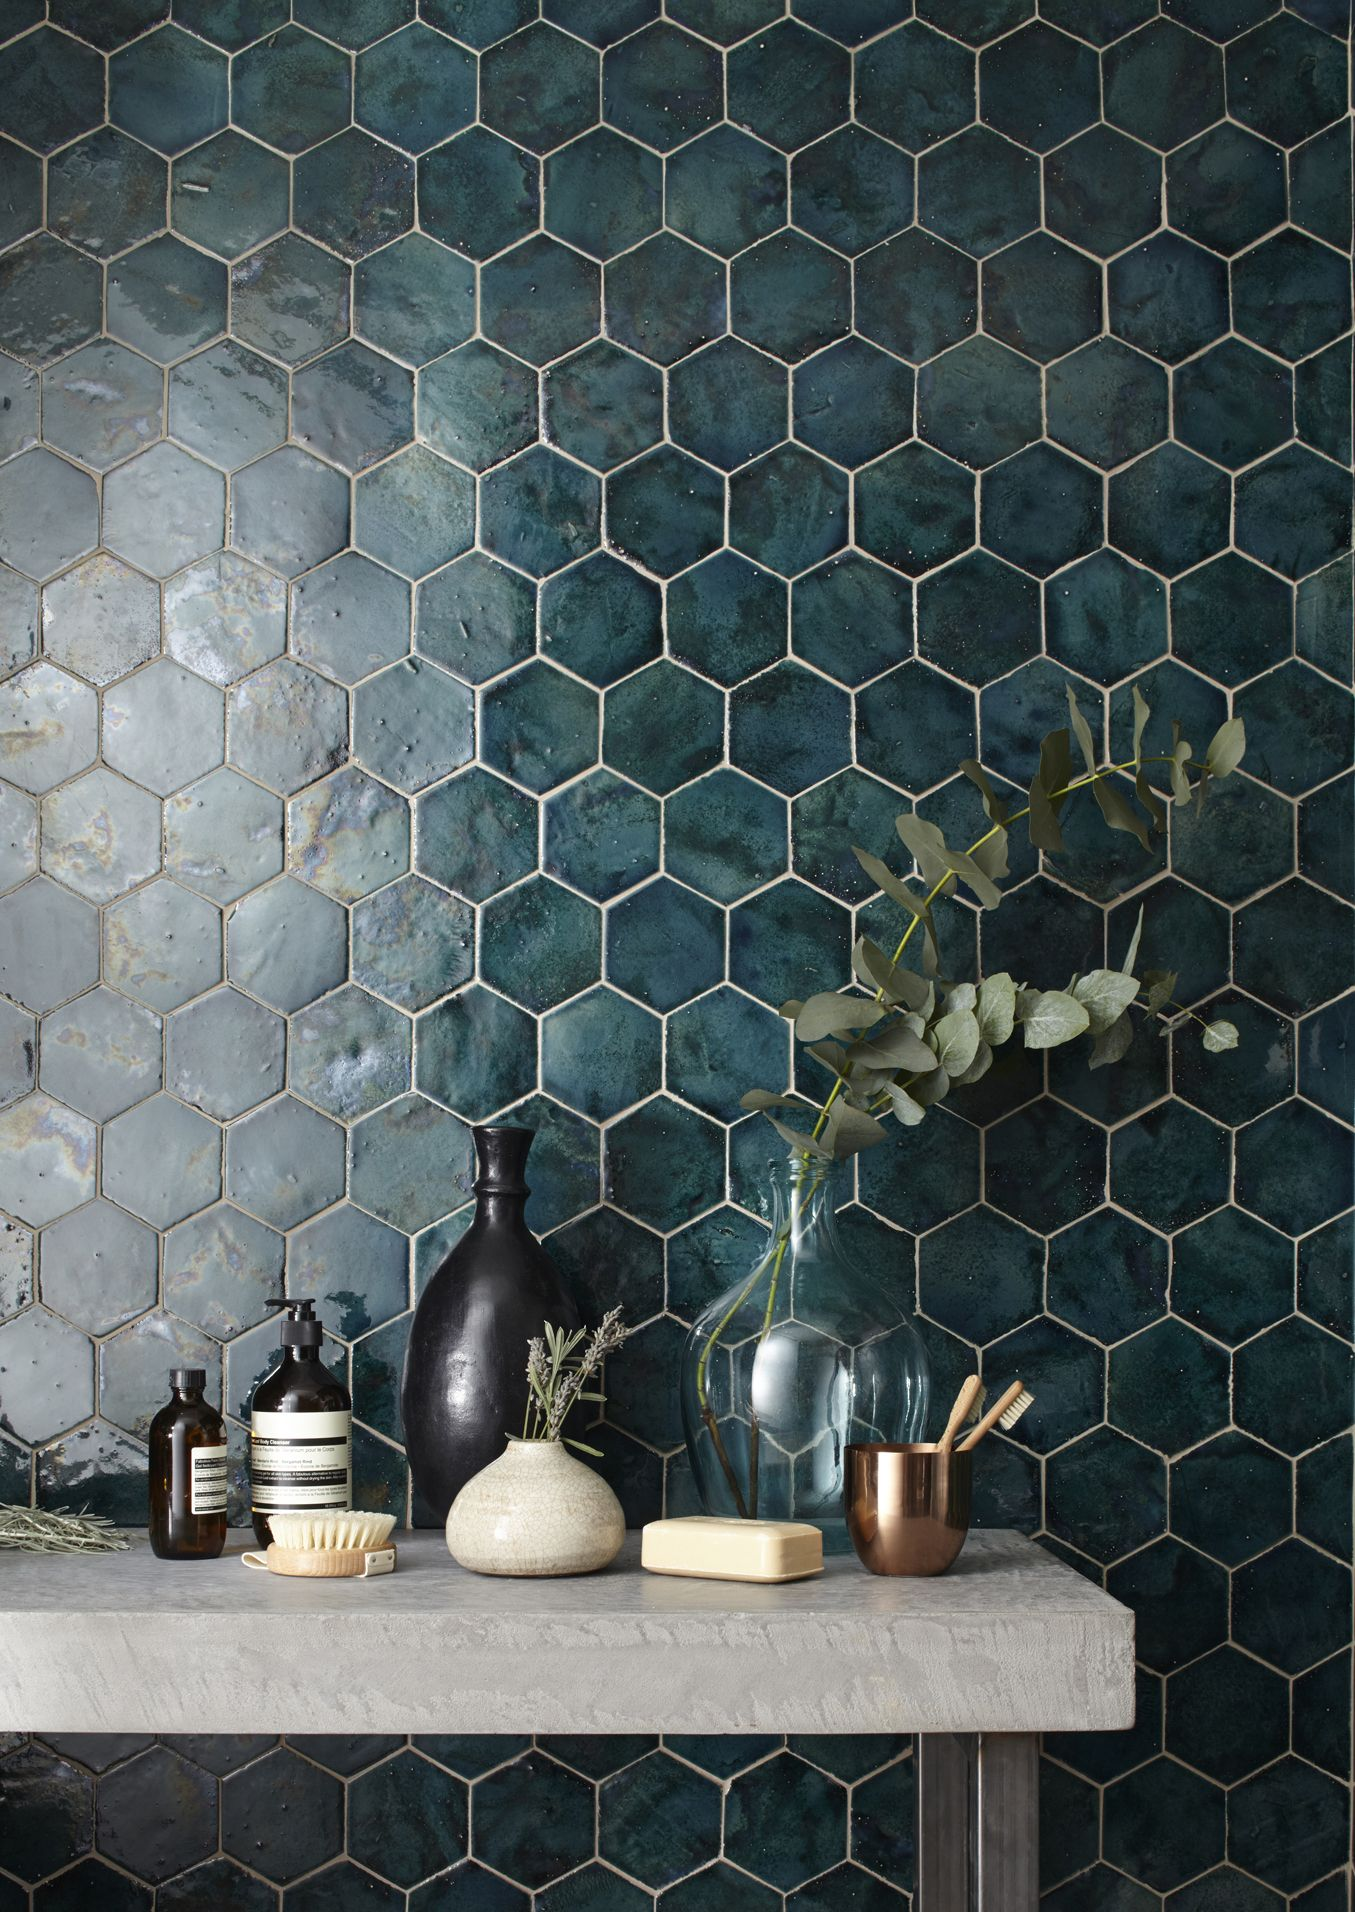 Washroom Tiles Curated By Saltandritual Home In 2019 Bathroom Tiles